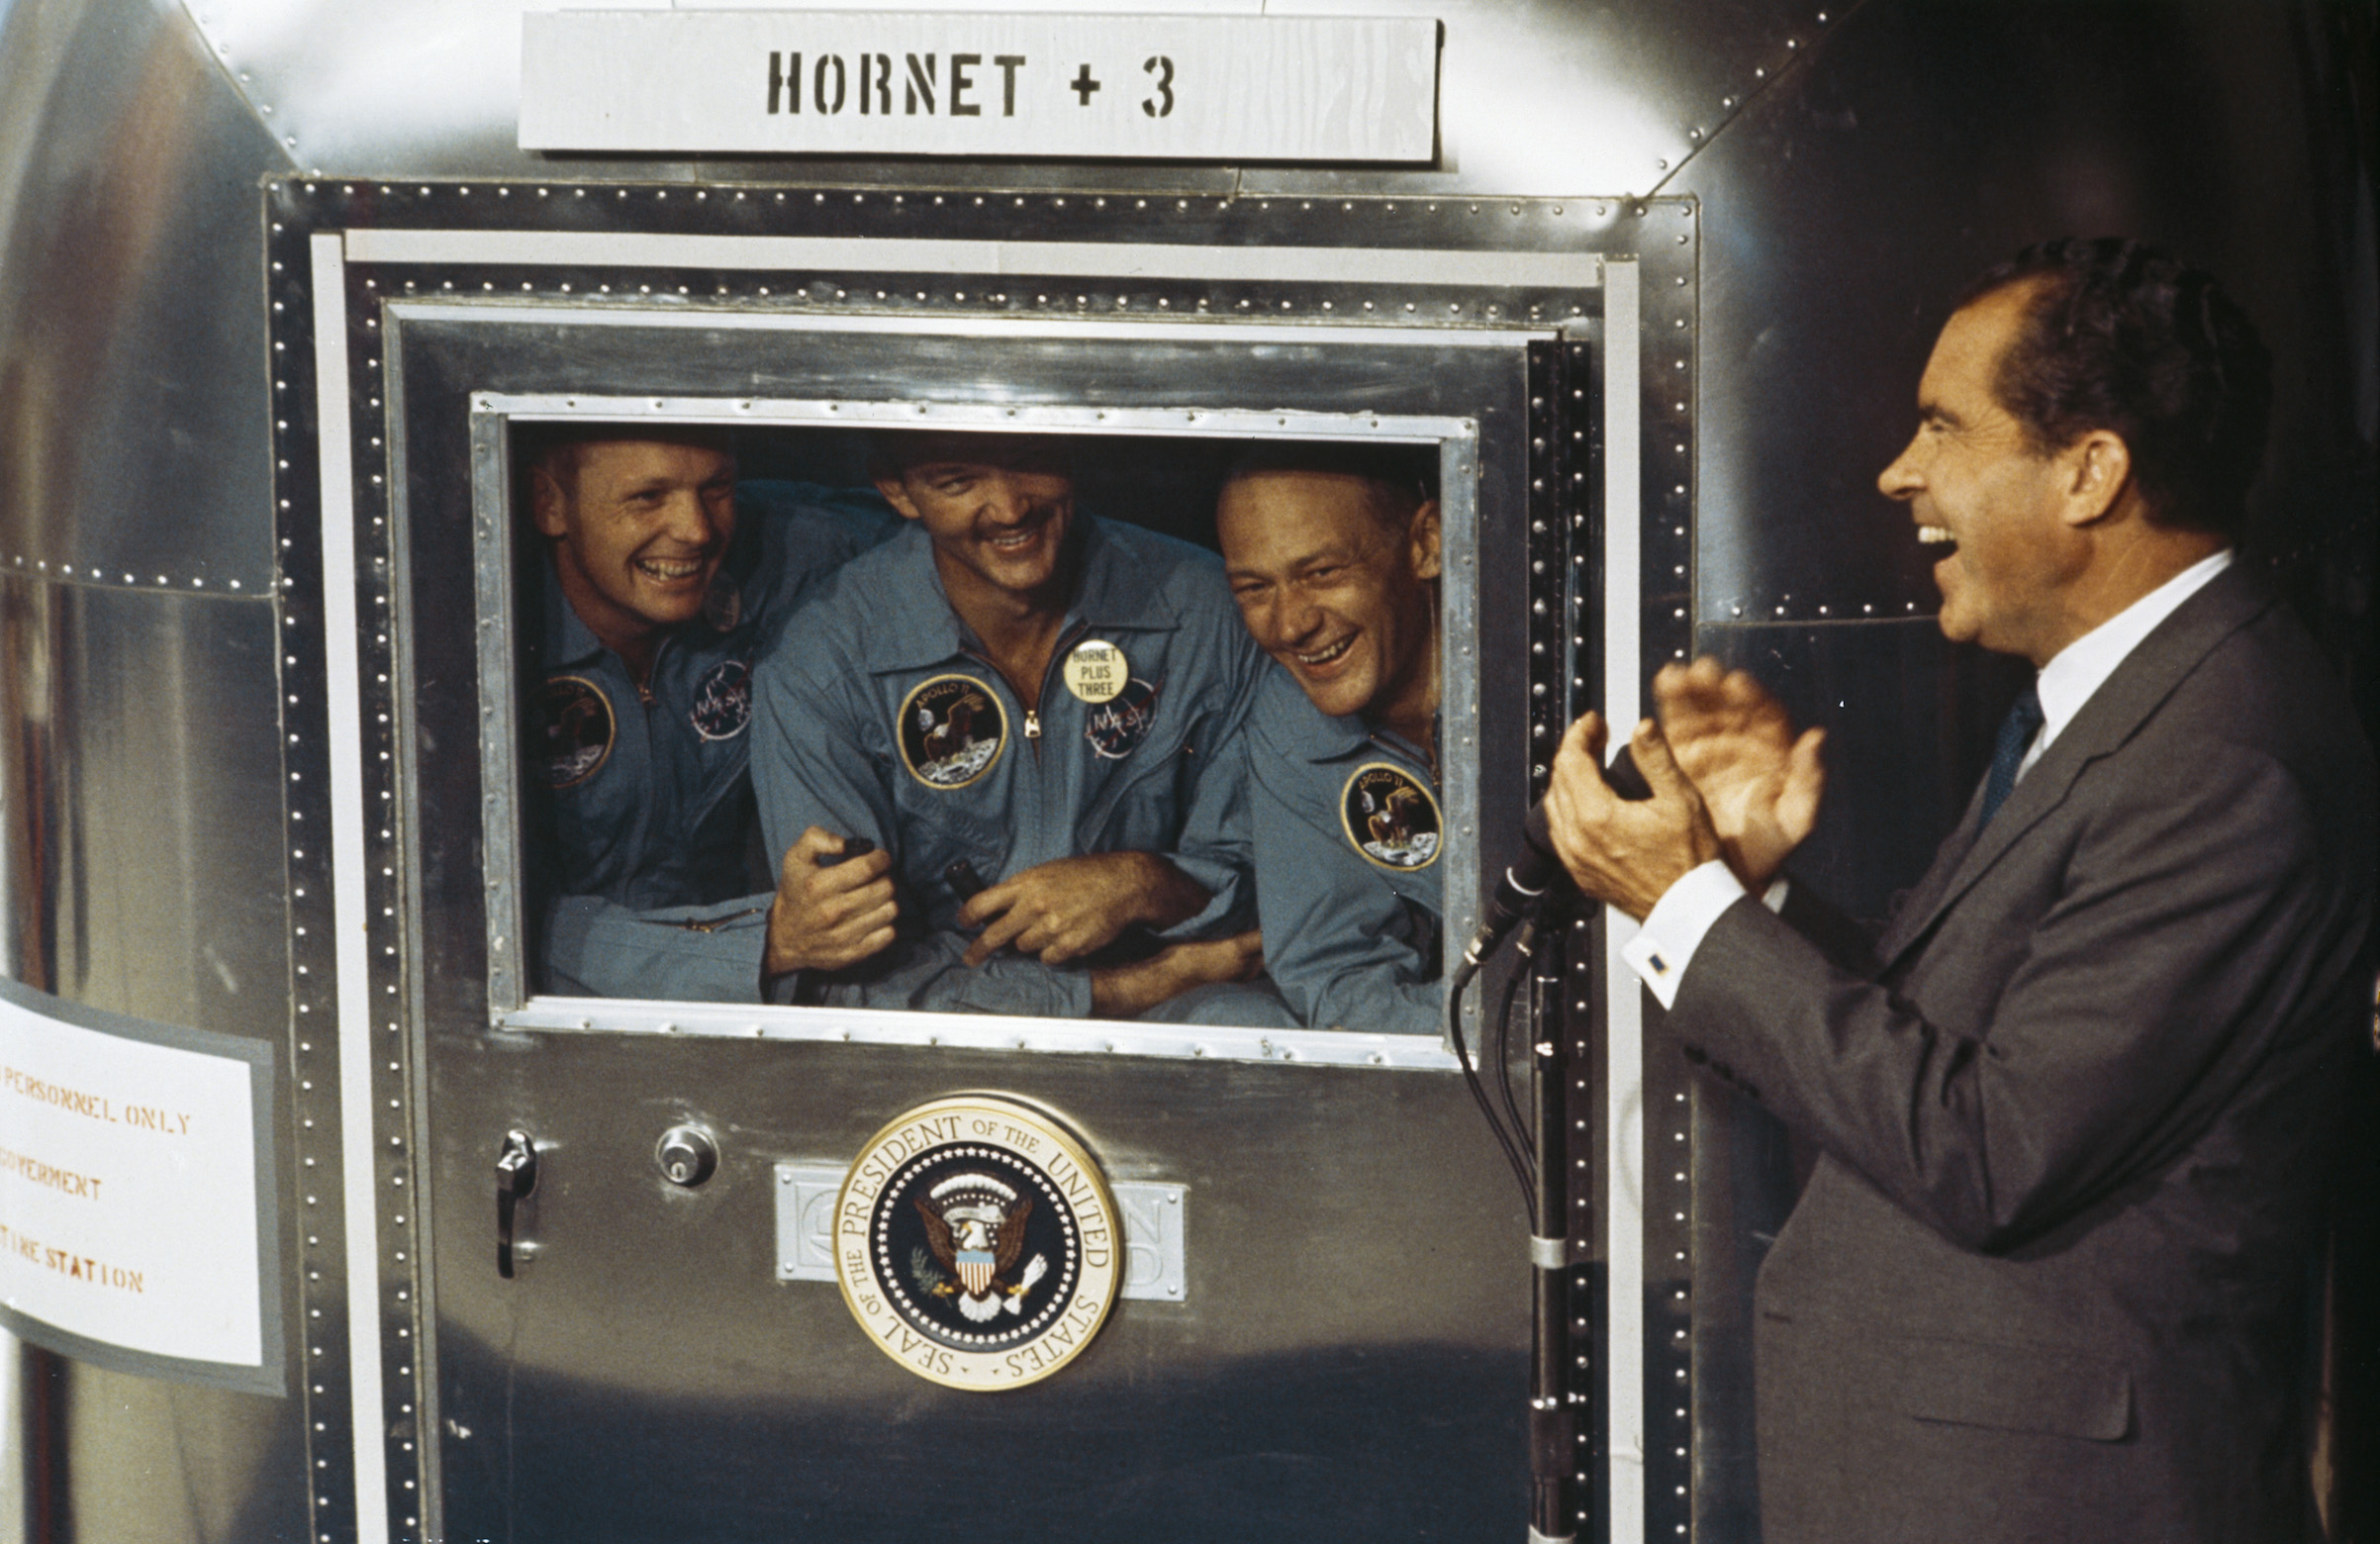 From left to right, Neil Armstrong, Michael Collins and Buzz Aldrin, the crew of the historic Apollo 11 moon landing mission, are subjected to a period of quarantine upon their return to earth. Through the window of their Mobile Quarantine Facility, they hold a conversation with President Richard Nixon.